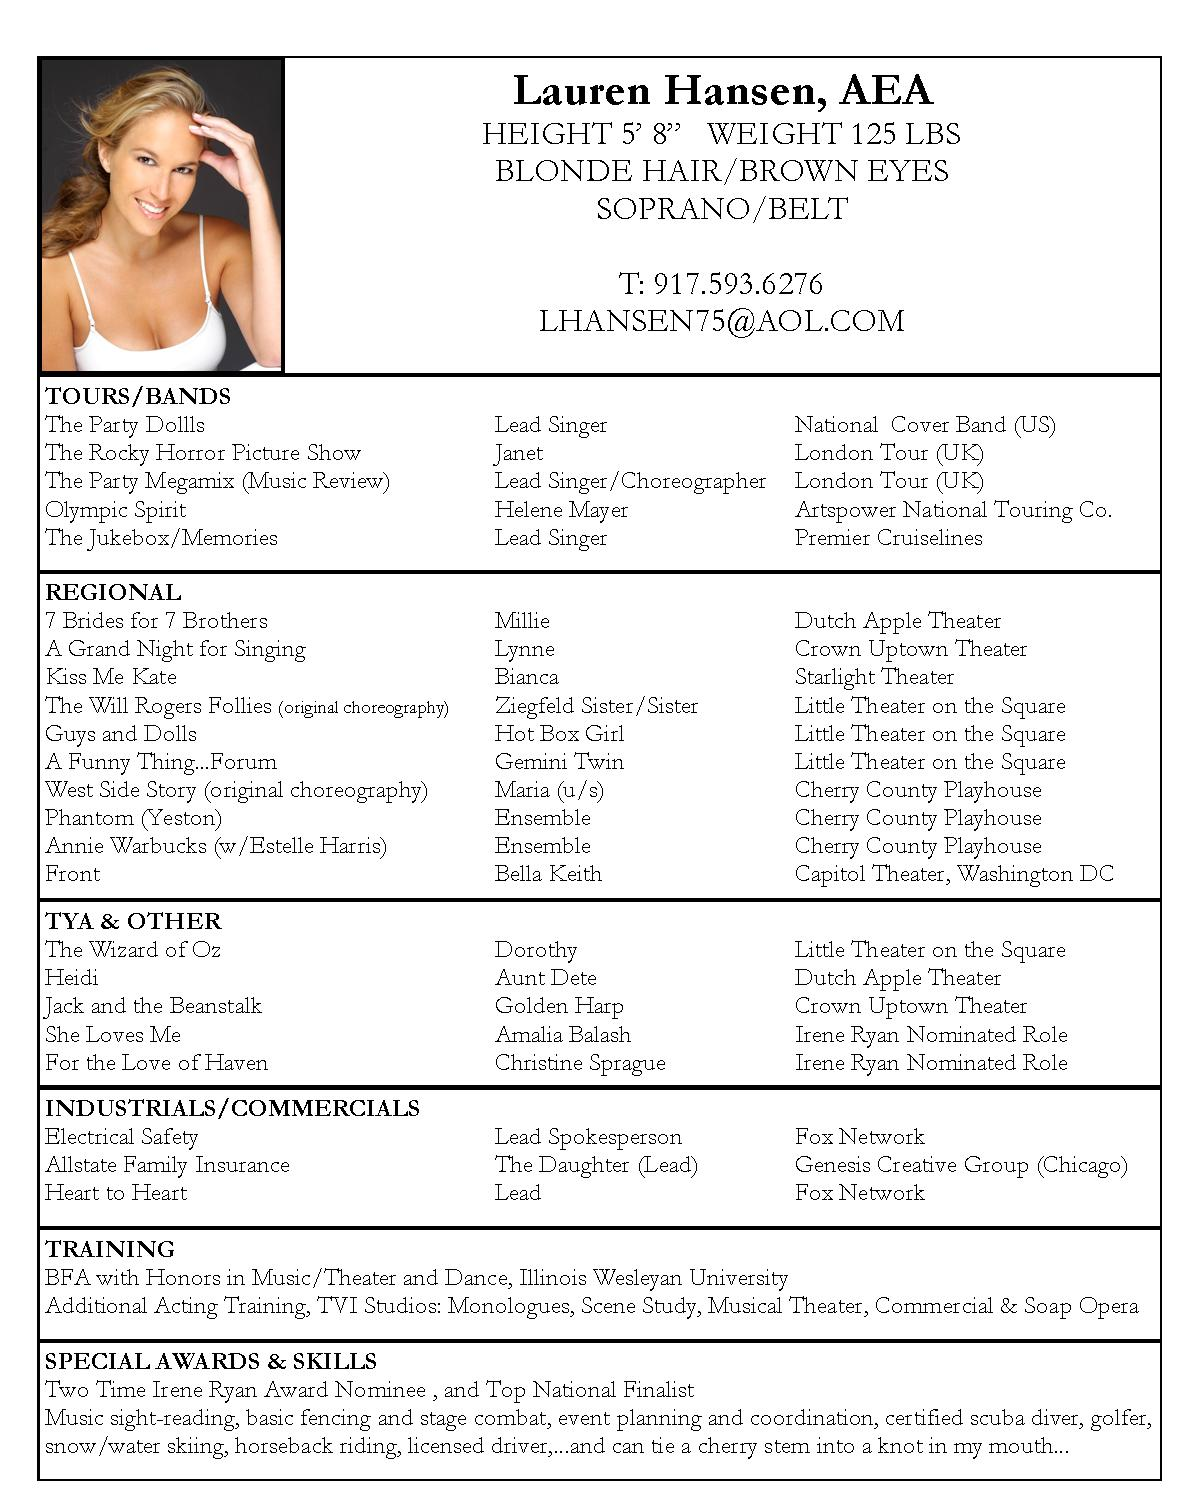 Opposenewapstandardsus  Winsome Resume For Actors Resume For Acting Actors Acting Resume Template  With Great Acting Cv  Beginner Acting Resume Example For Inexperienced  With Amazing Best Words For Resume Also Resume Samples Customer Service In Addition Technical Theatre Resume And How To Make Your Resume As Well As Skills To Put In Resume Additionally Summary Of A Resume From Kelseymarieco With Opposenewapstandardsus  Great Resume For Actors Resume For Acting Actors Acting Resume Template  With Amazing Acting Cv  Beginner Acting Resume Example For Inexperienced  And Winsome Best Words For Resume Also Resume Samples Customer Service In Addition Technical Theatre Resume From Kelseymarieco